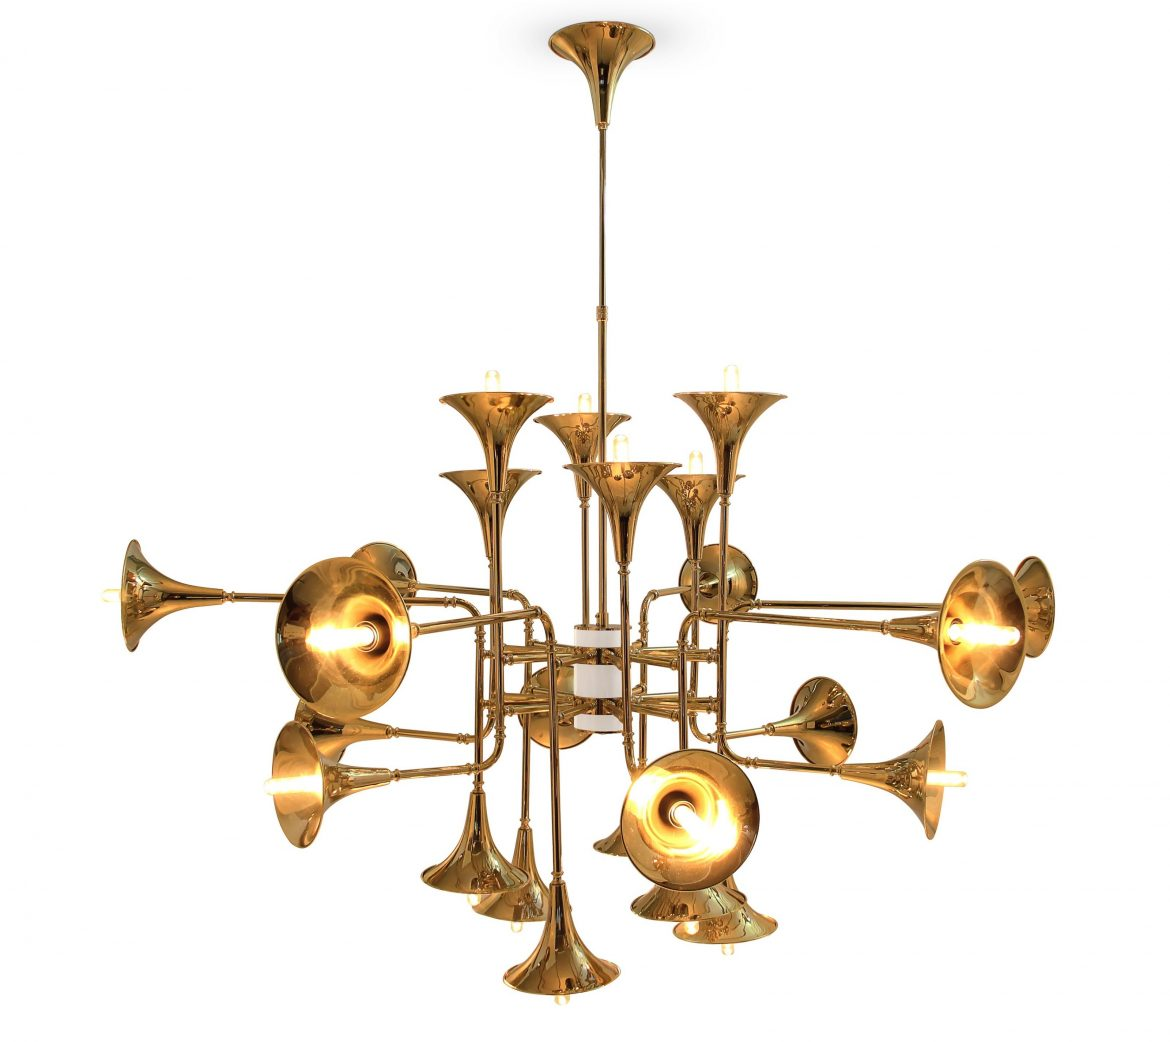 Luxury Lighting Designs For Your Home Decor At Mohd mohd Luxury Lighting Designs For Your Home Decor At Mohd Luxury Lighting Designs For Your Home Decor At Mohd 4